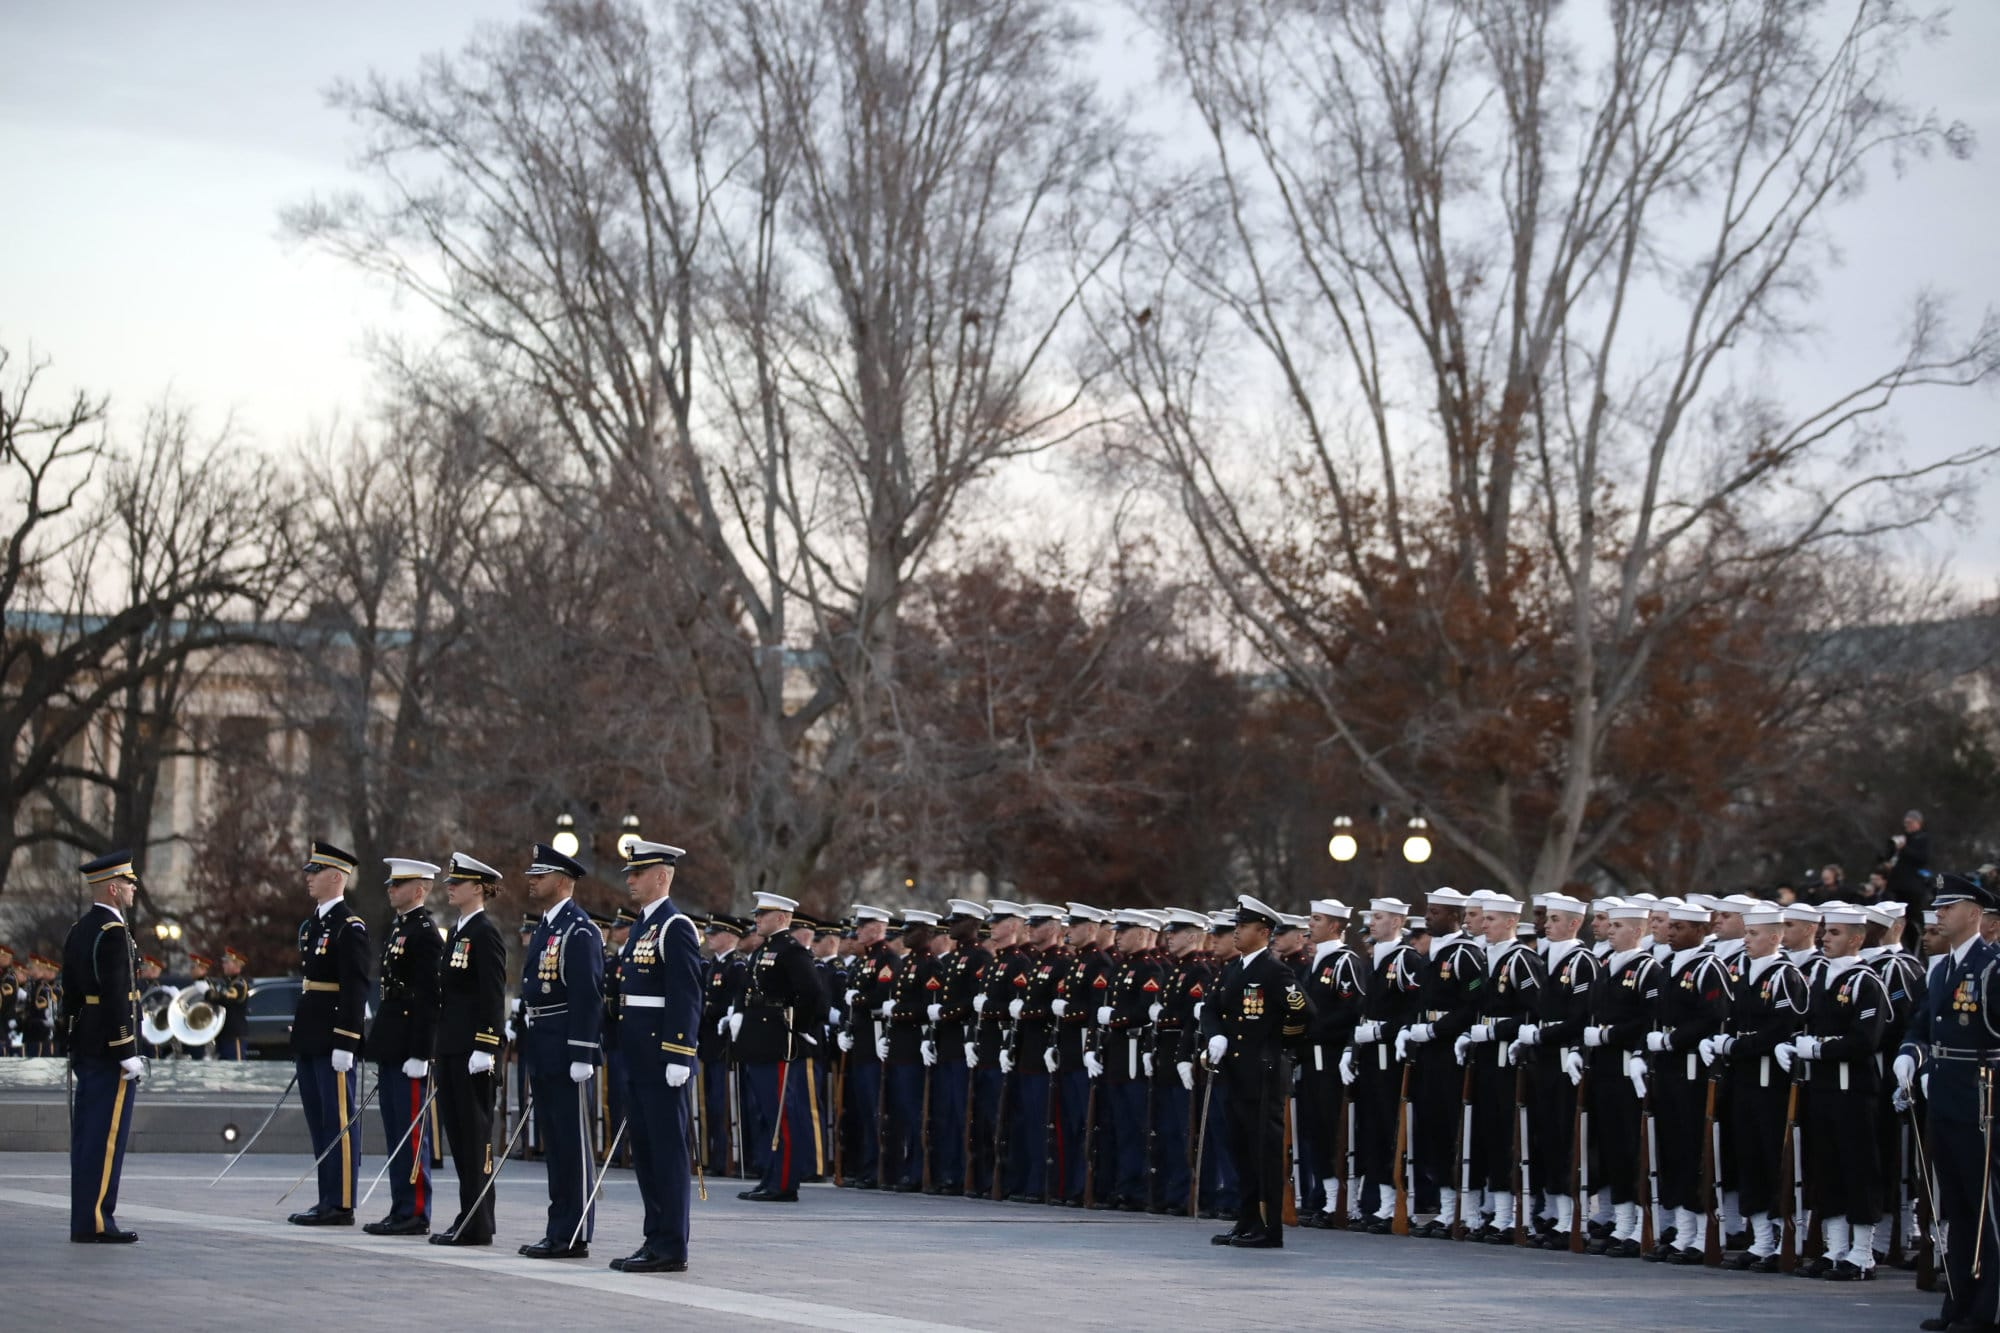 Military members watch as the casket of former President H.W. Bush arrives the U.S. Capitol, Monday, Dec. 3, 2018, in Washington. (AP Photo/Alex Brandon, Pool)